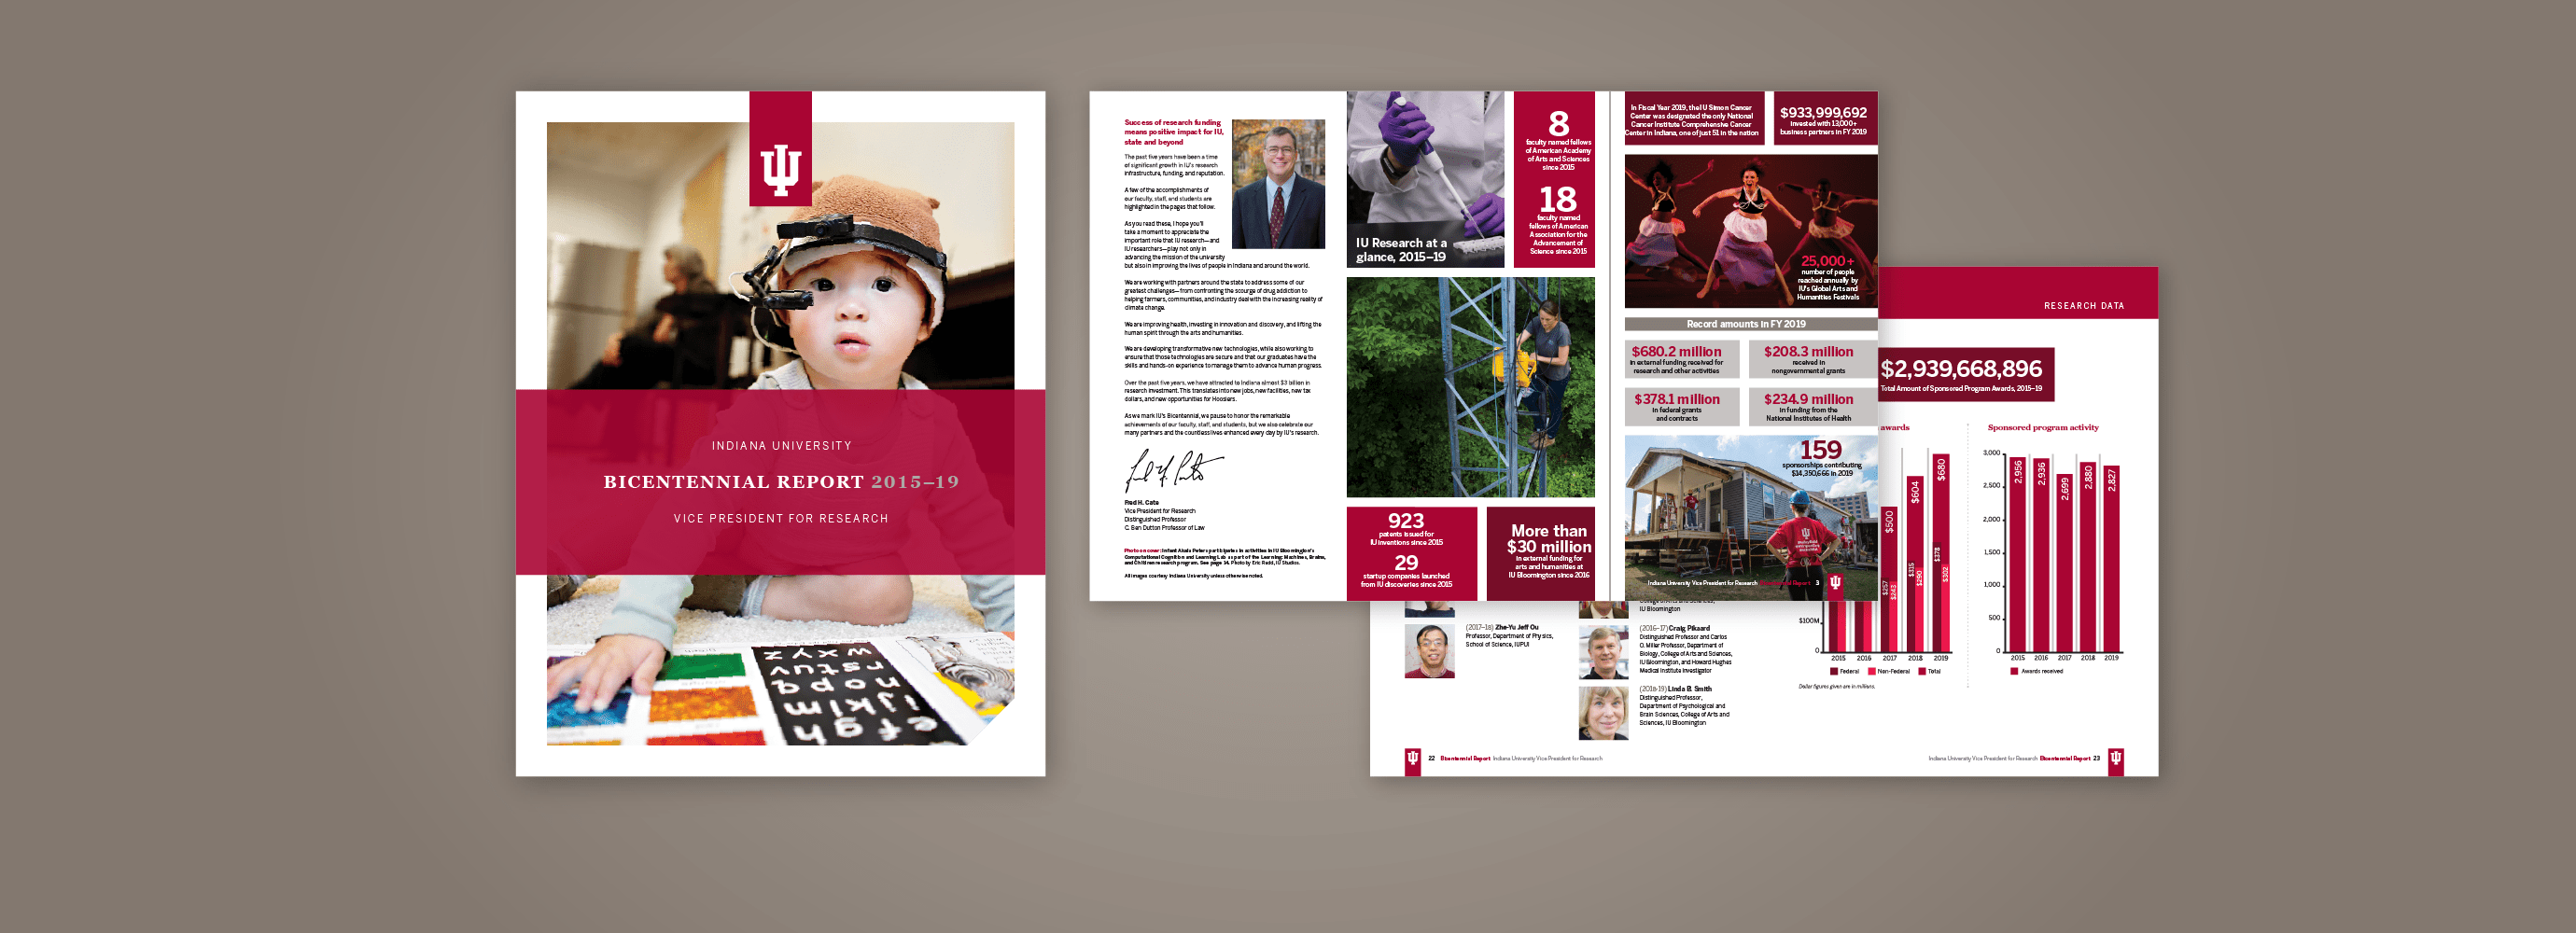 Cover and spreads for the Vice President of Research annual report